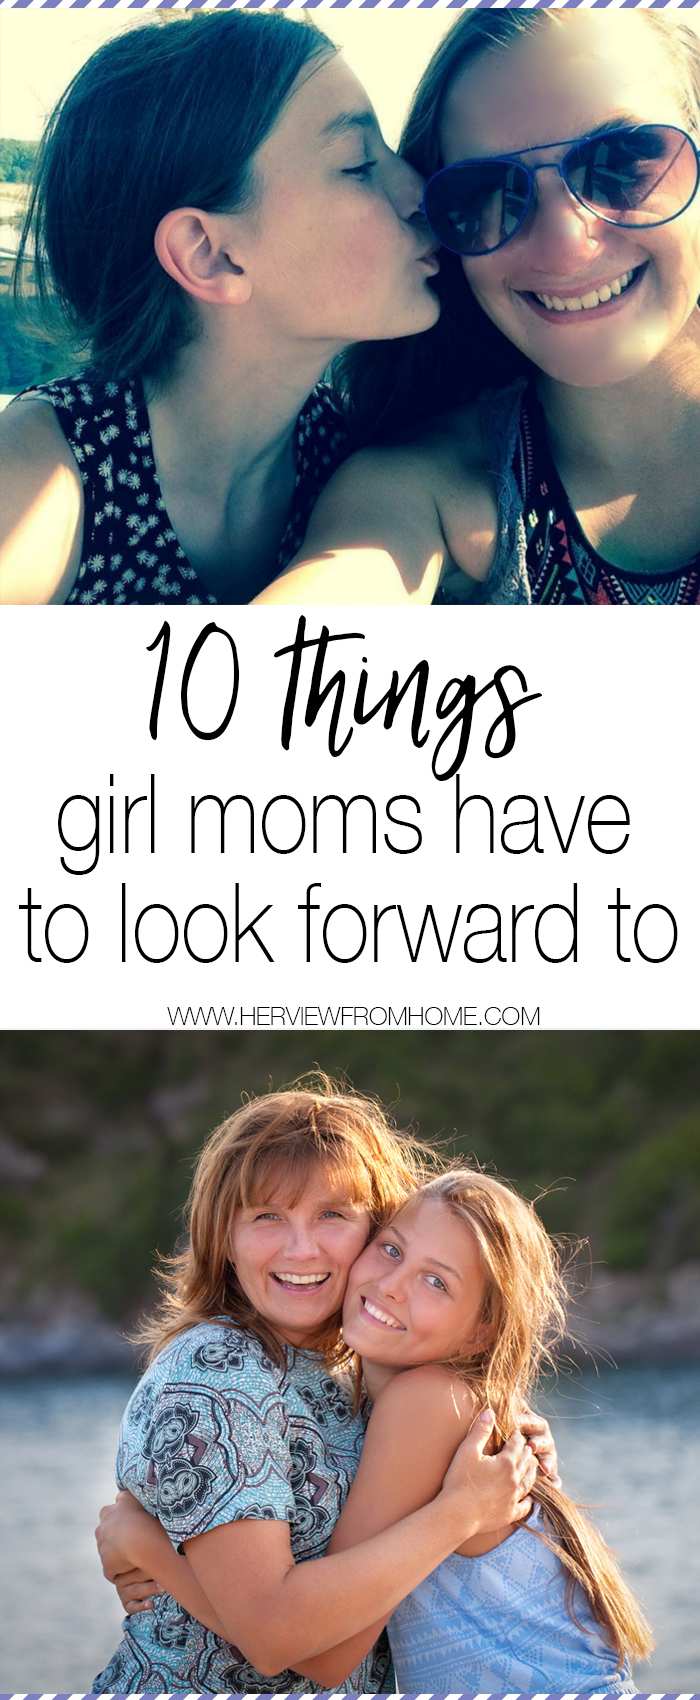 If you are the mom of a young daughter, here's what you have to look forward to...for real.